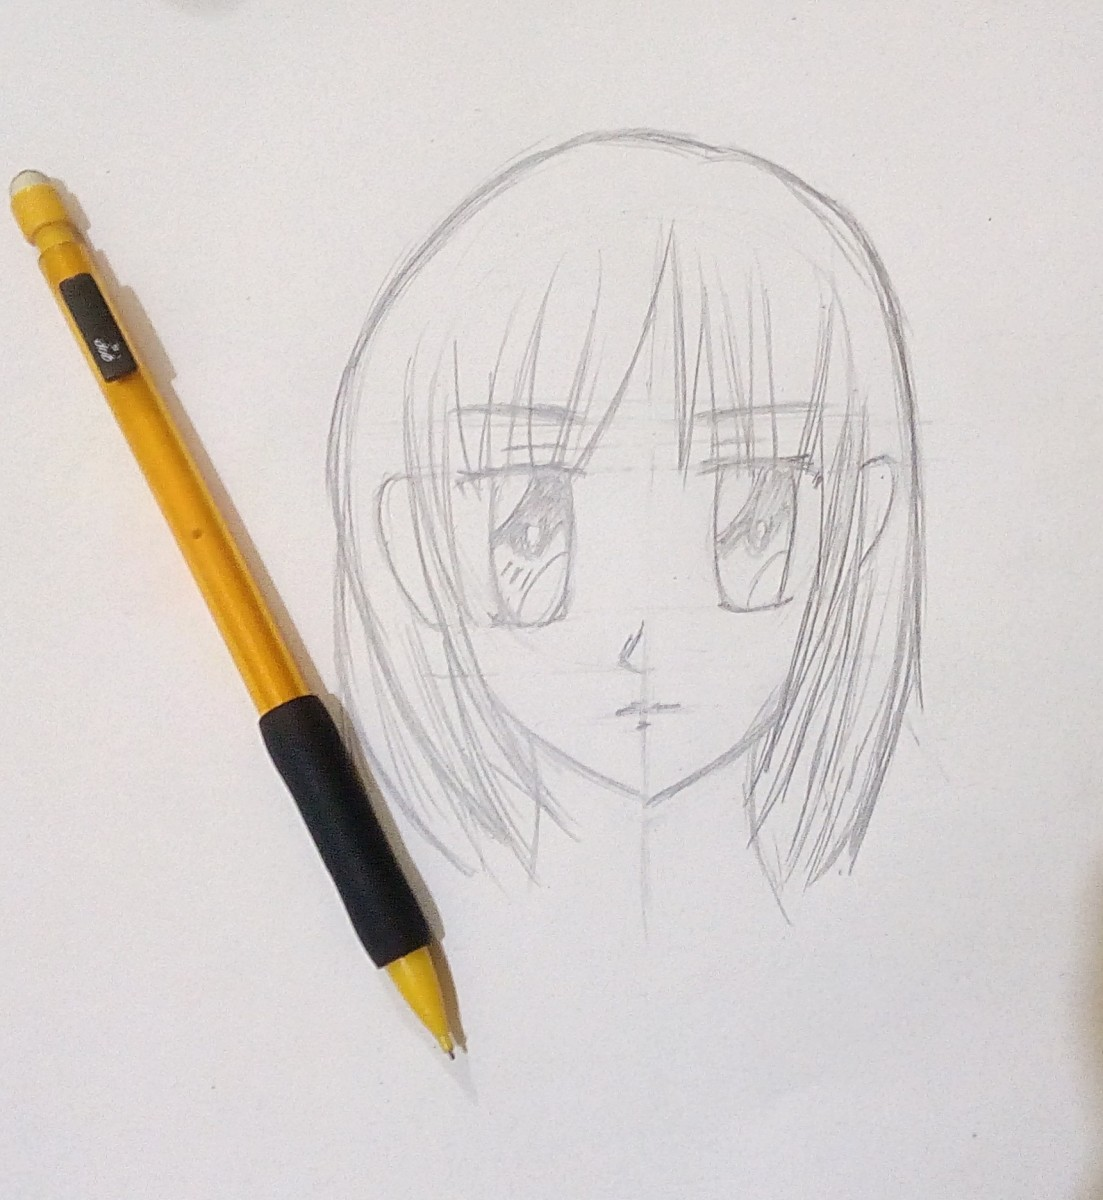 How to Draw an Anime Girl Face (Shojo)